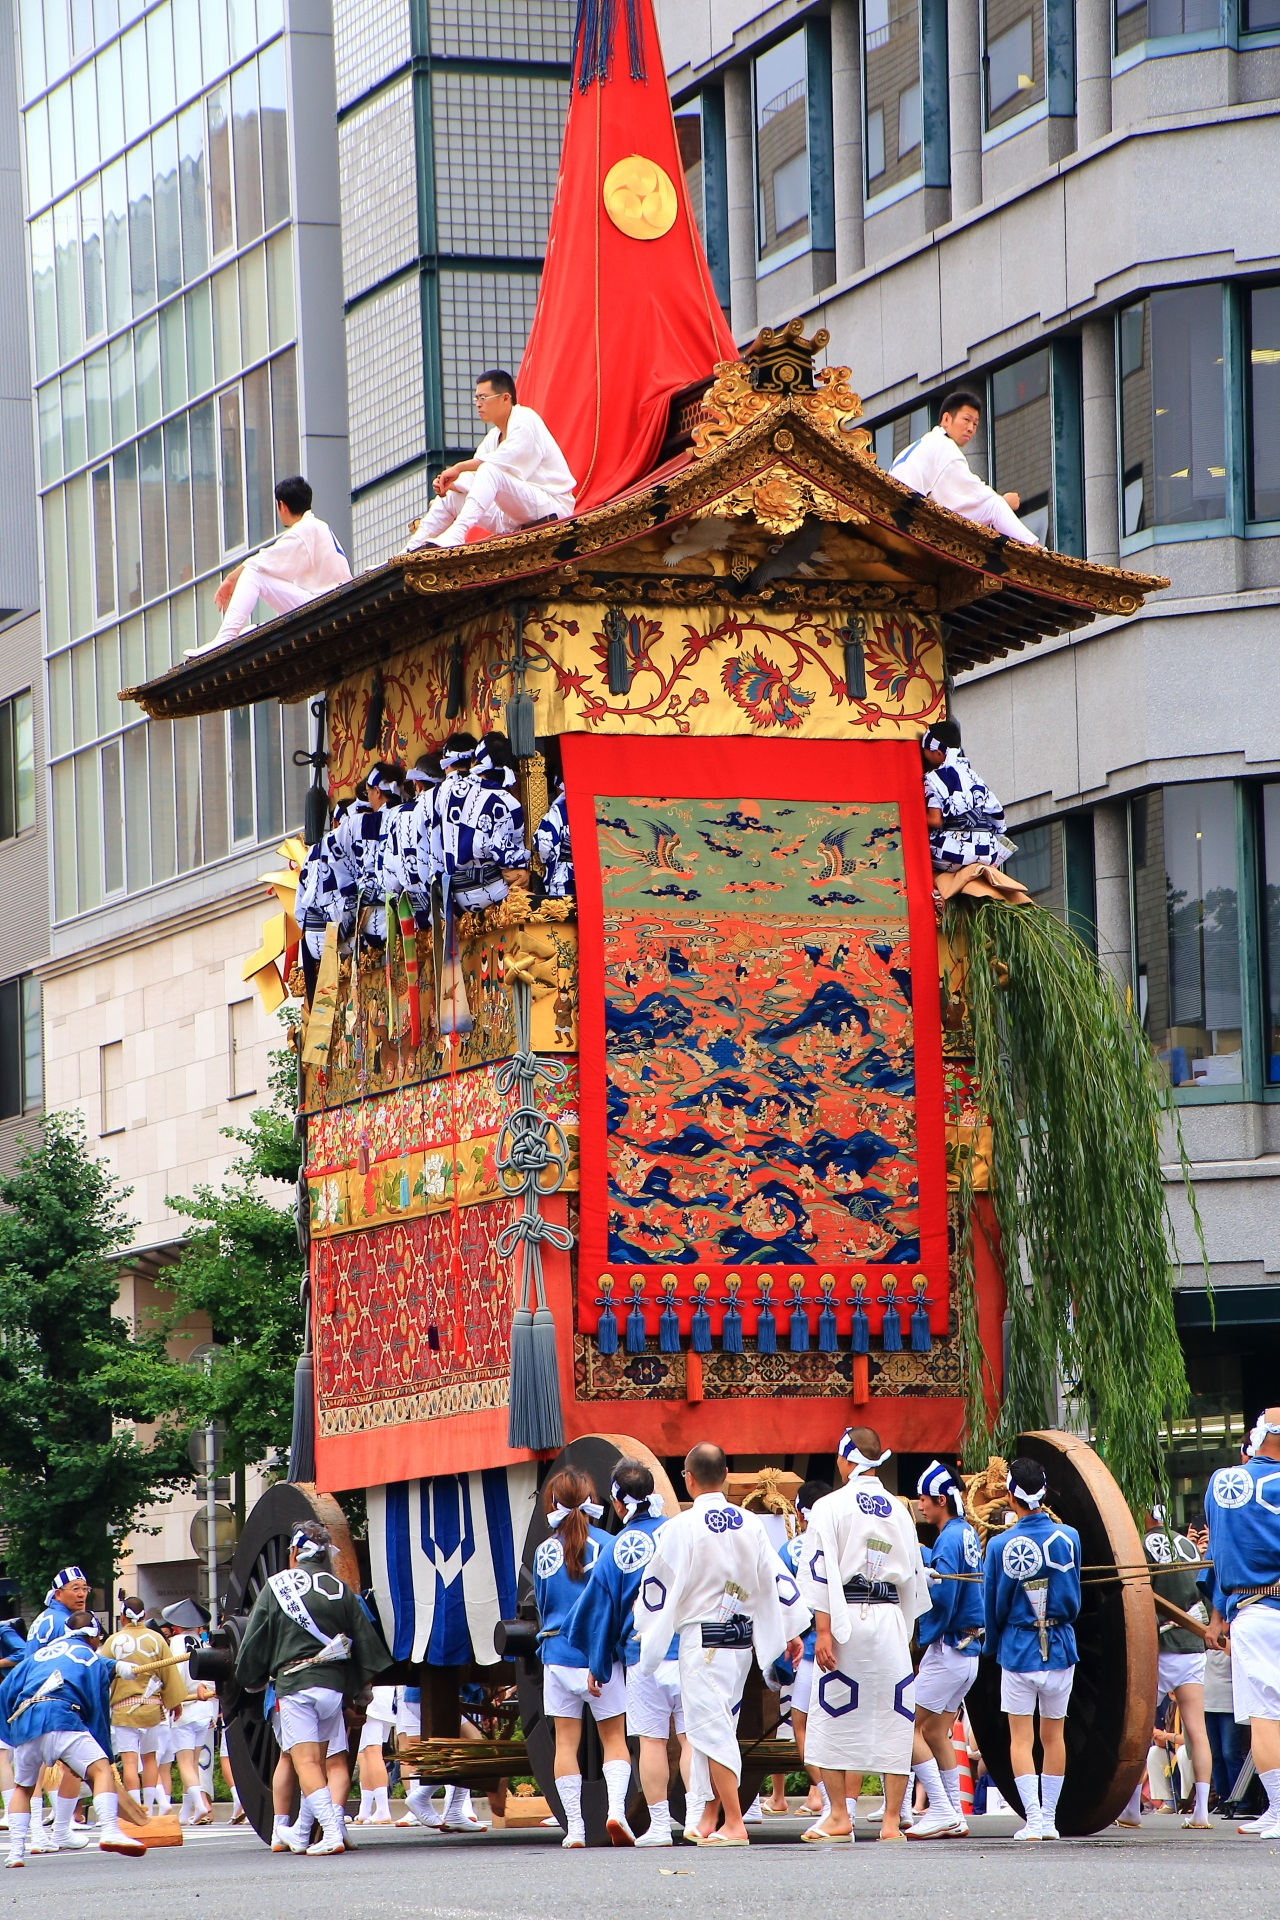 Yama-Hoko-Junko Cruise of the Gion-Festival of the three biggest festivals in Kyoto